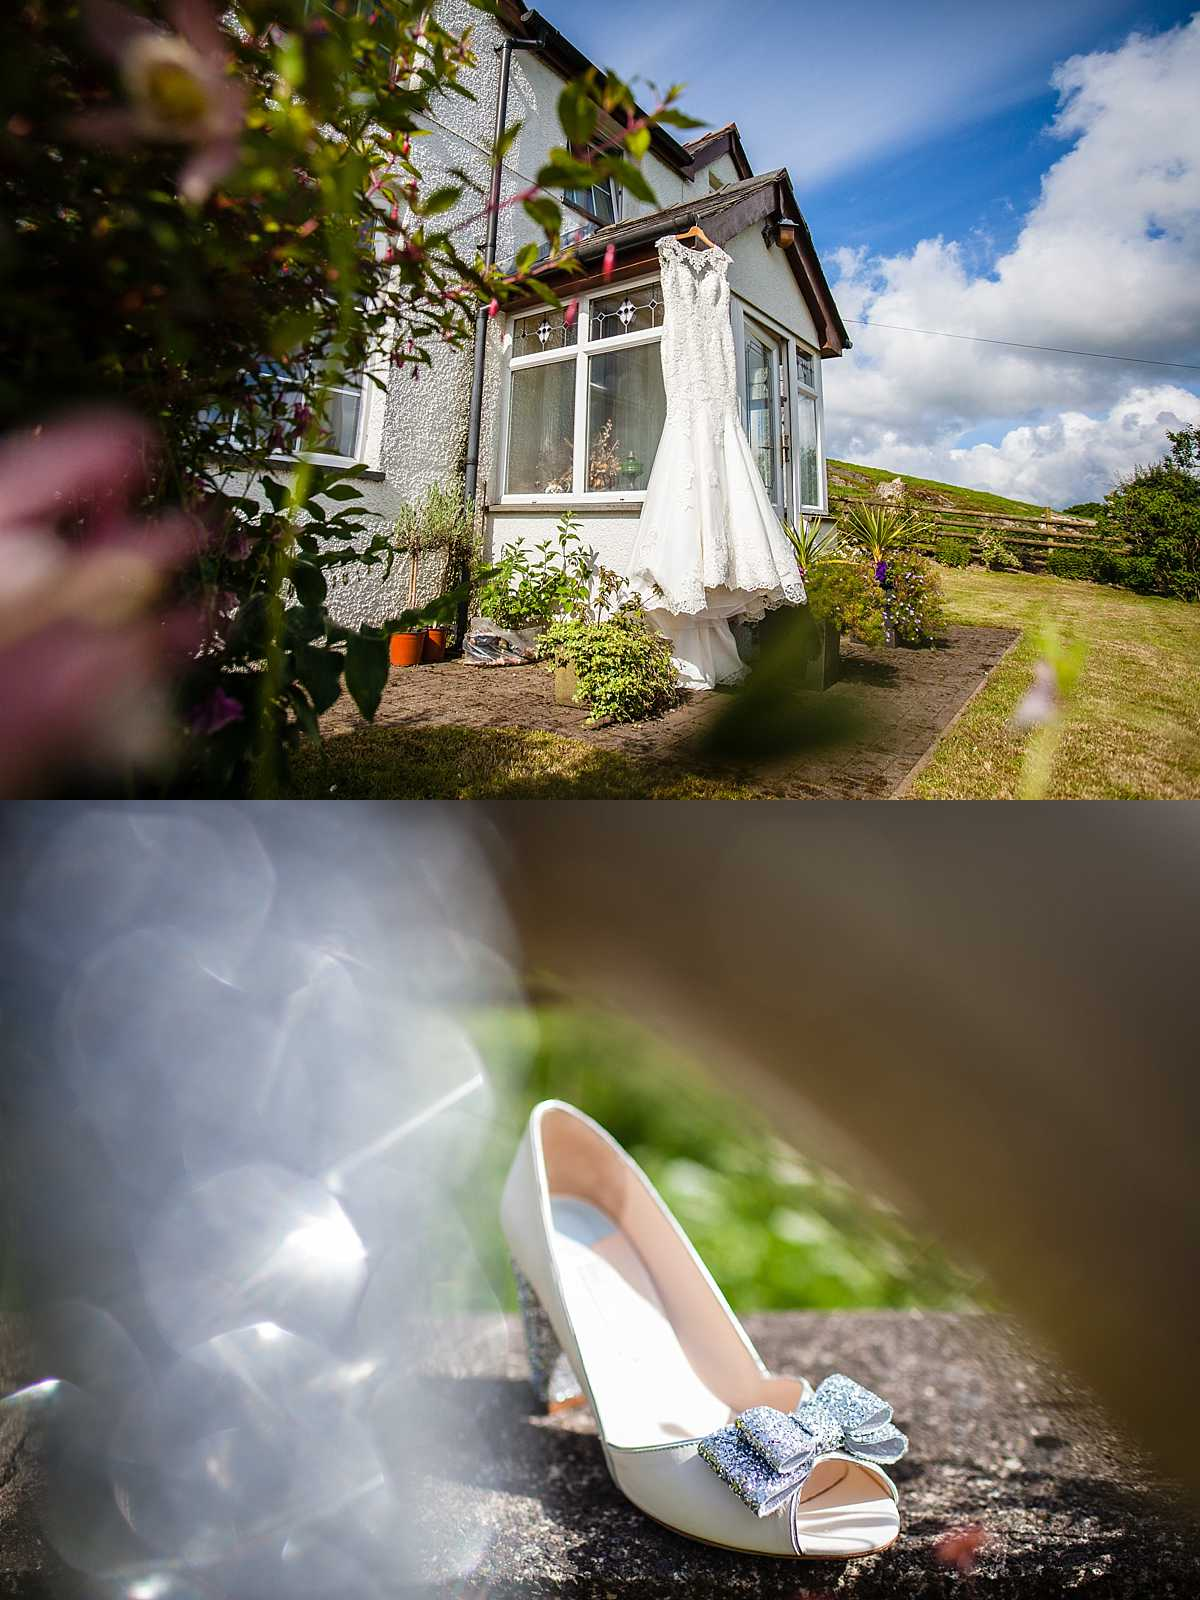 vintage wedding dress hanging outside welsh farm house with glittery sparkly shoes